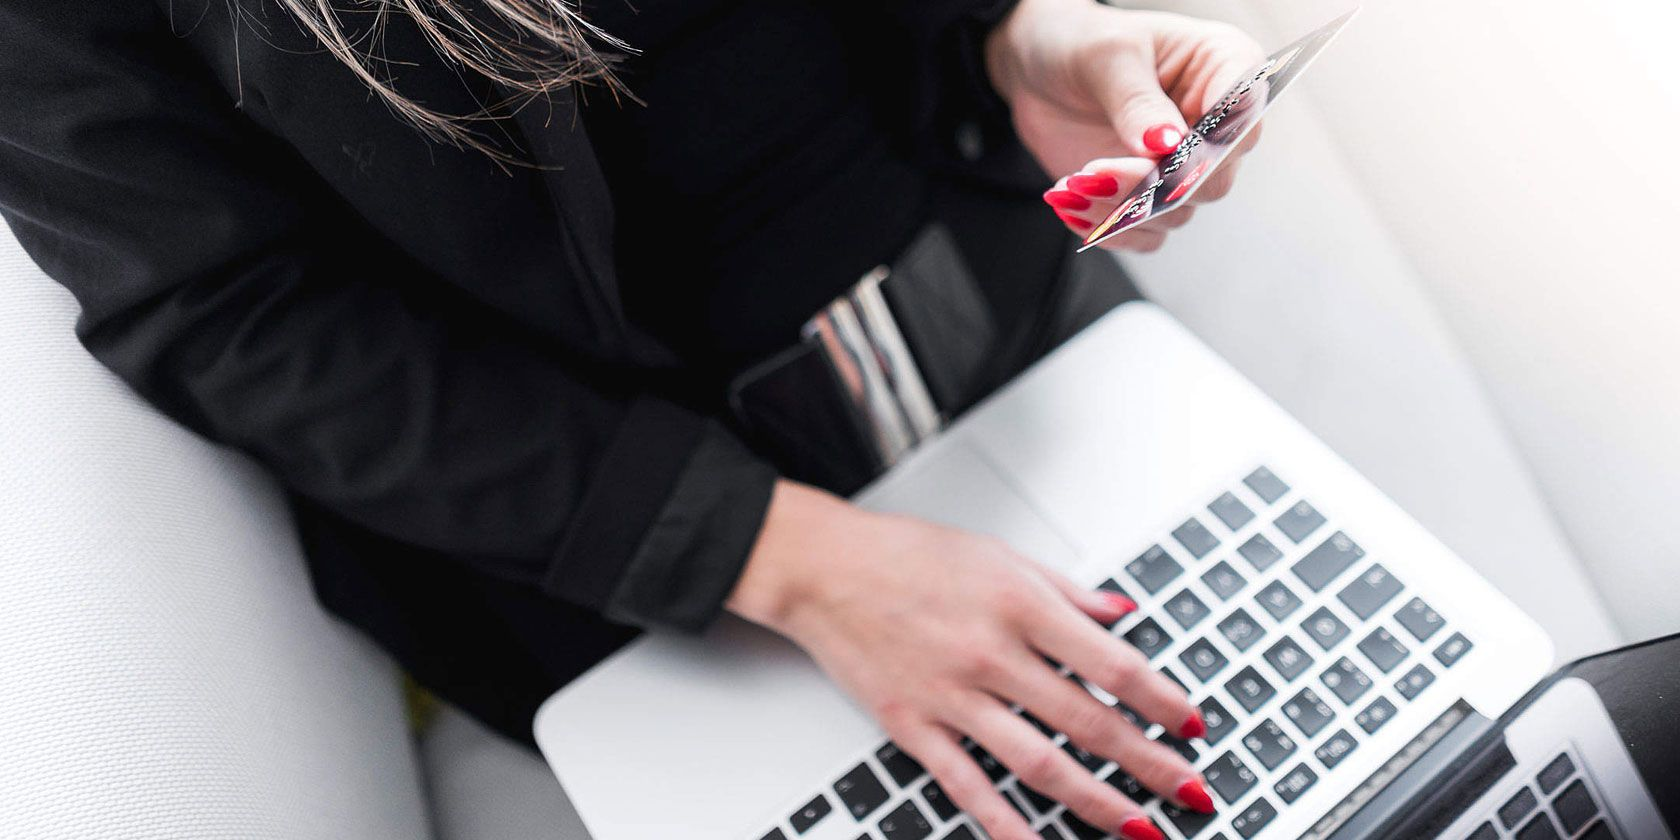 Love Online Shopping? 5 Postal Scams You Should Avoid